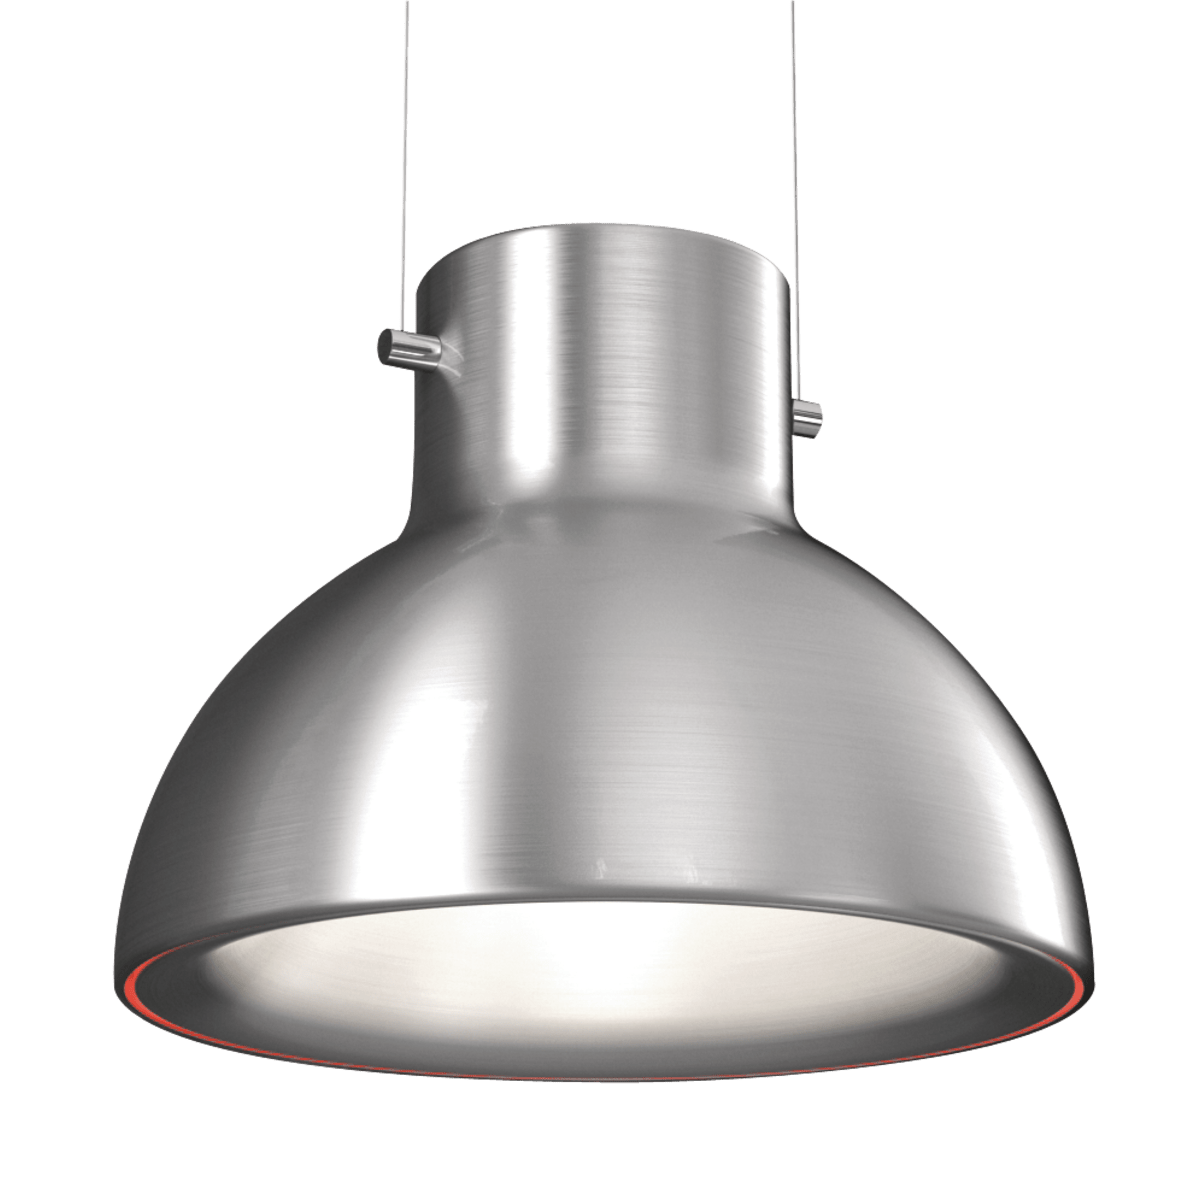 Luminaire Lighting Archeo Suspended Led Luminaire Flash Dq